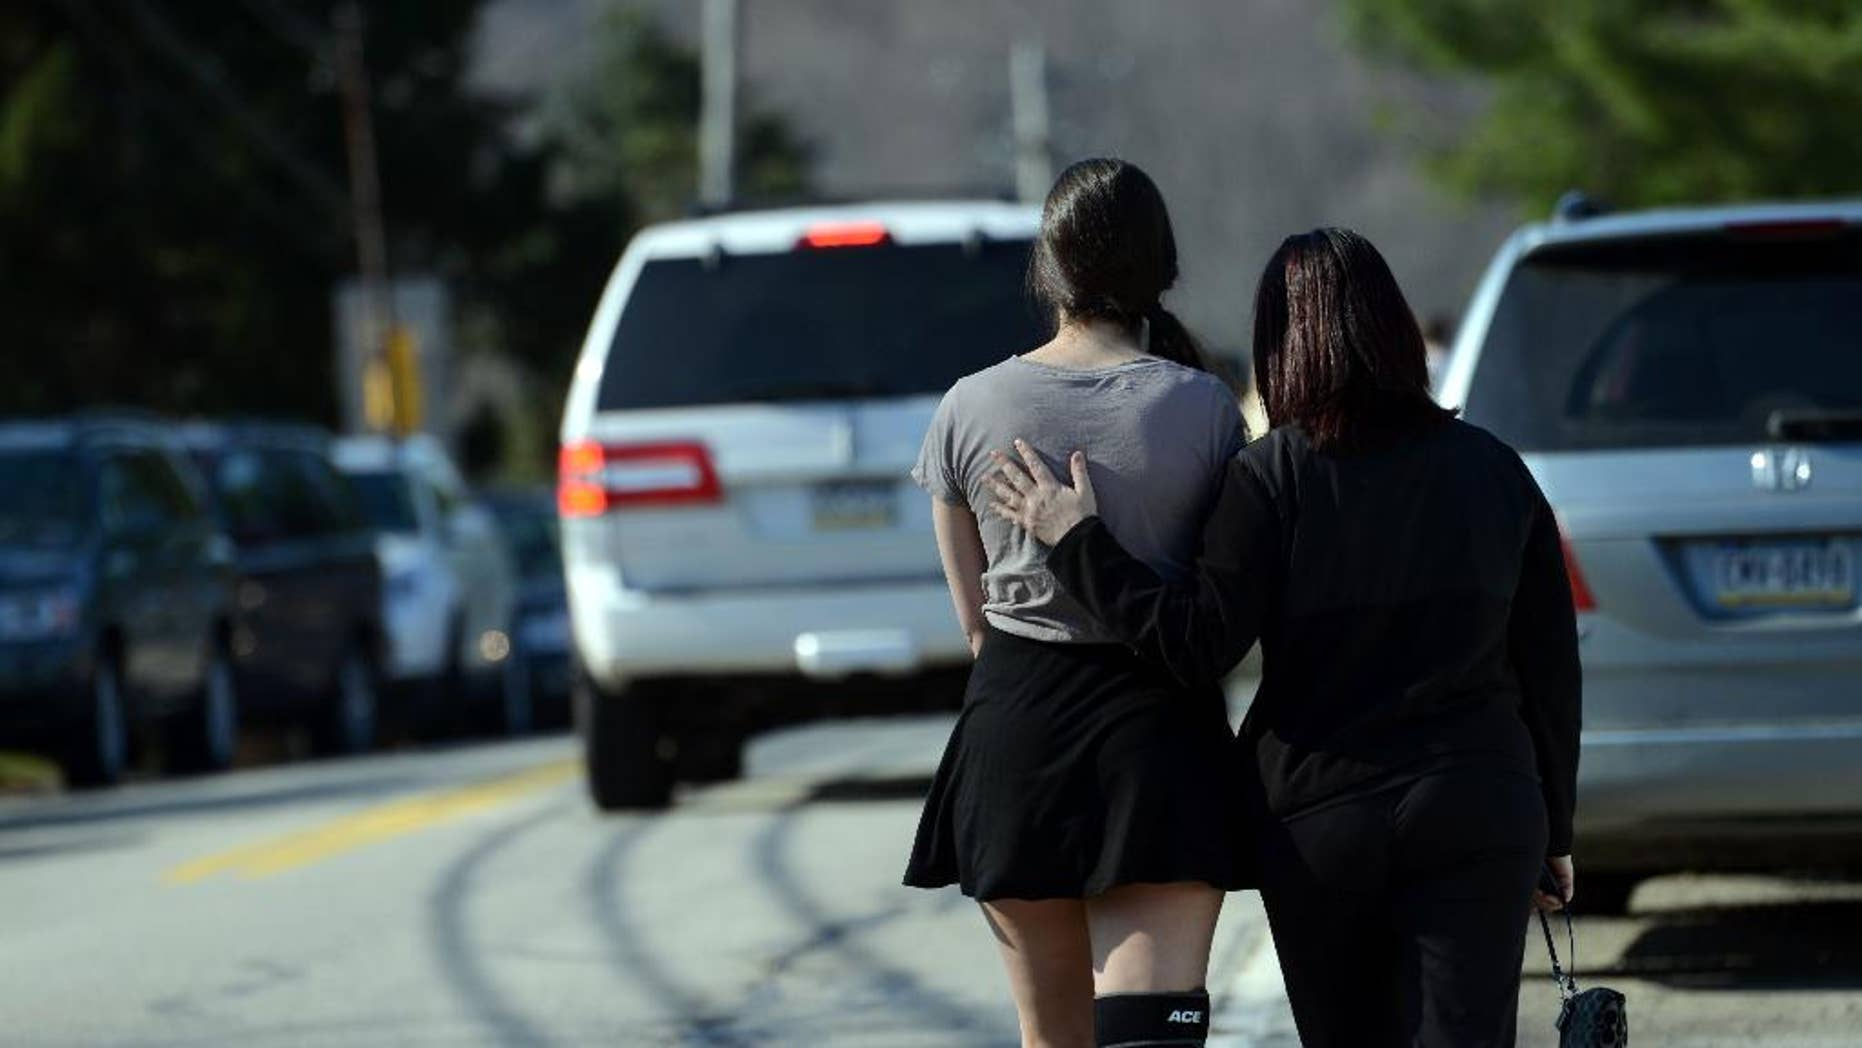 A parent consoles their child as the leave Franklin Regional High School after more than a dozen students were stabbed by a knife wielding suspect at the school on Wednesday, April 9, 2014, in Murrysville, Pa., near Pittsburgh. The suspect, a male student, was taken into custody and is being questioned. (AP Photo/Tribune Review, Sean Stipp)  PITTSBURGH OUT